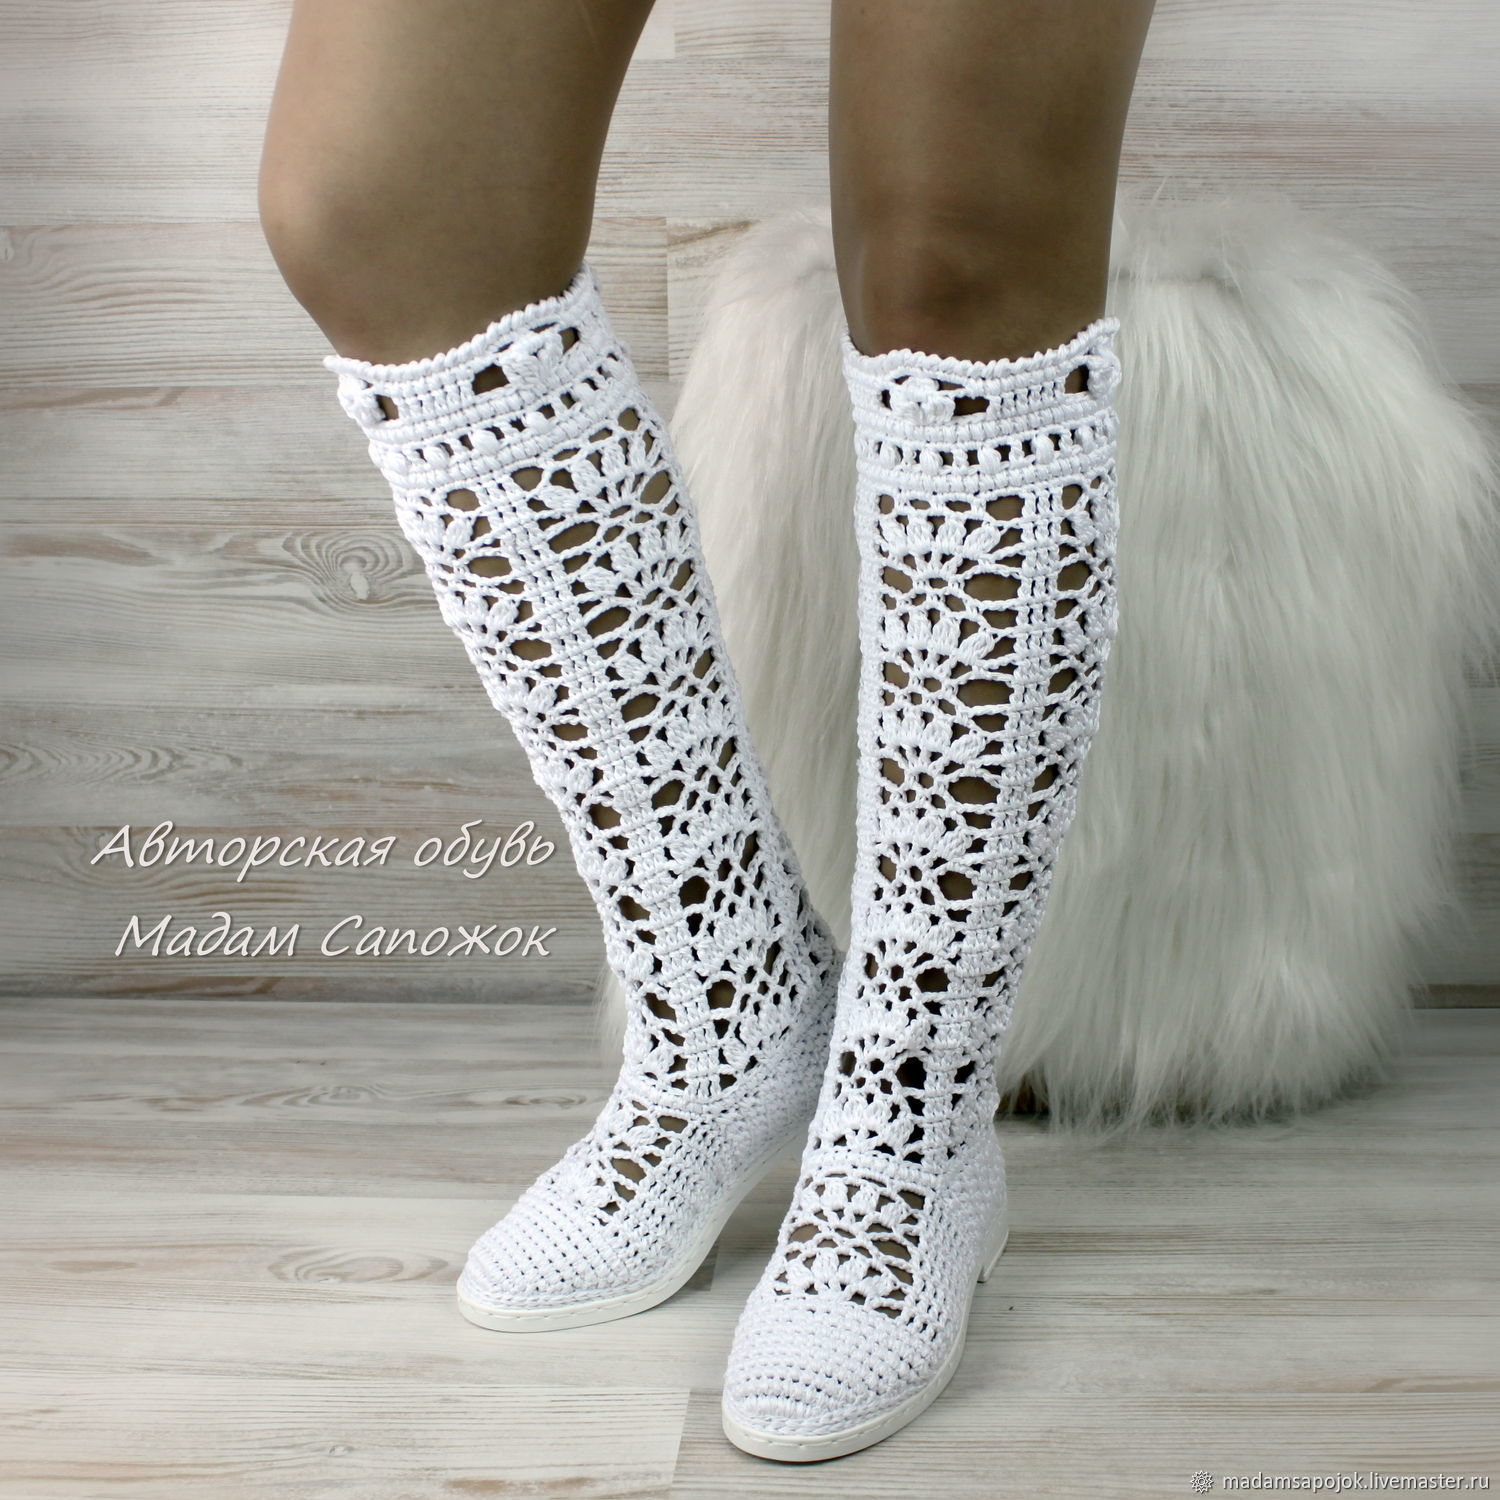 eae4efb851 Online Handmade Shoes handmade. Order Boots-old 'First love' knitted.  MadameBoots.